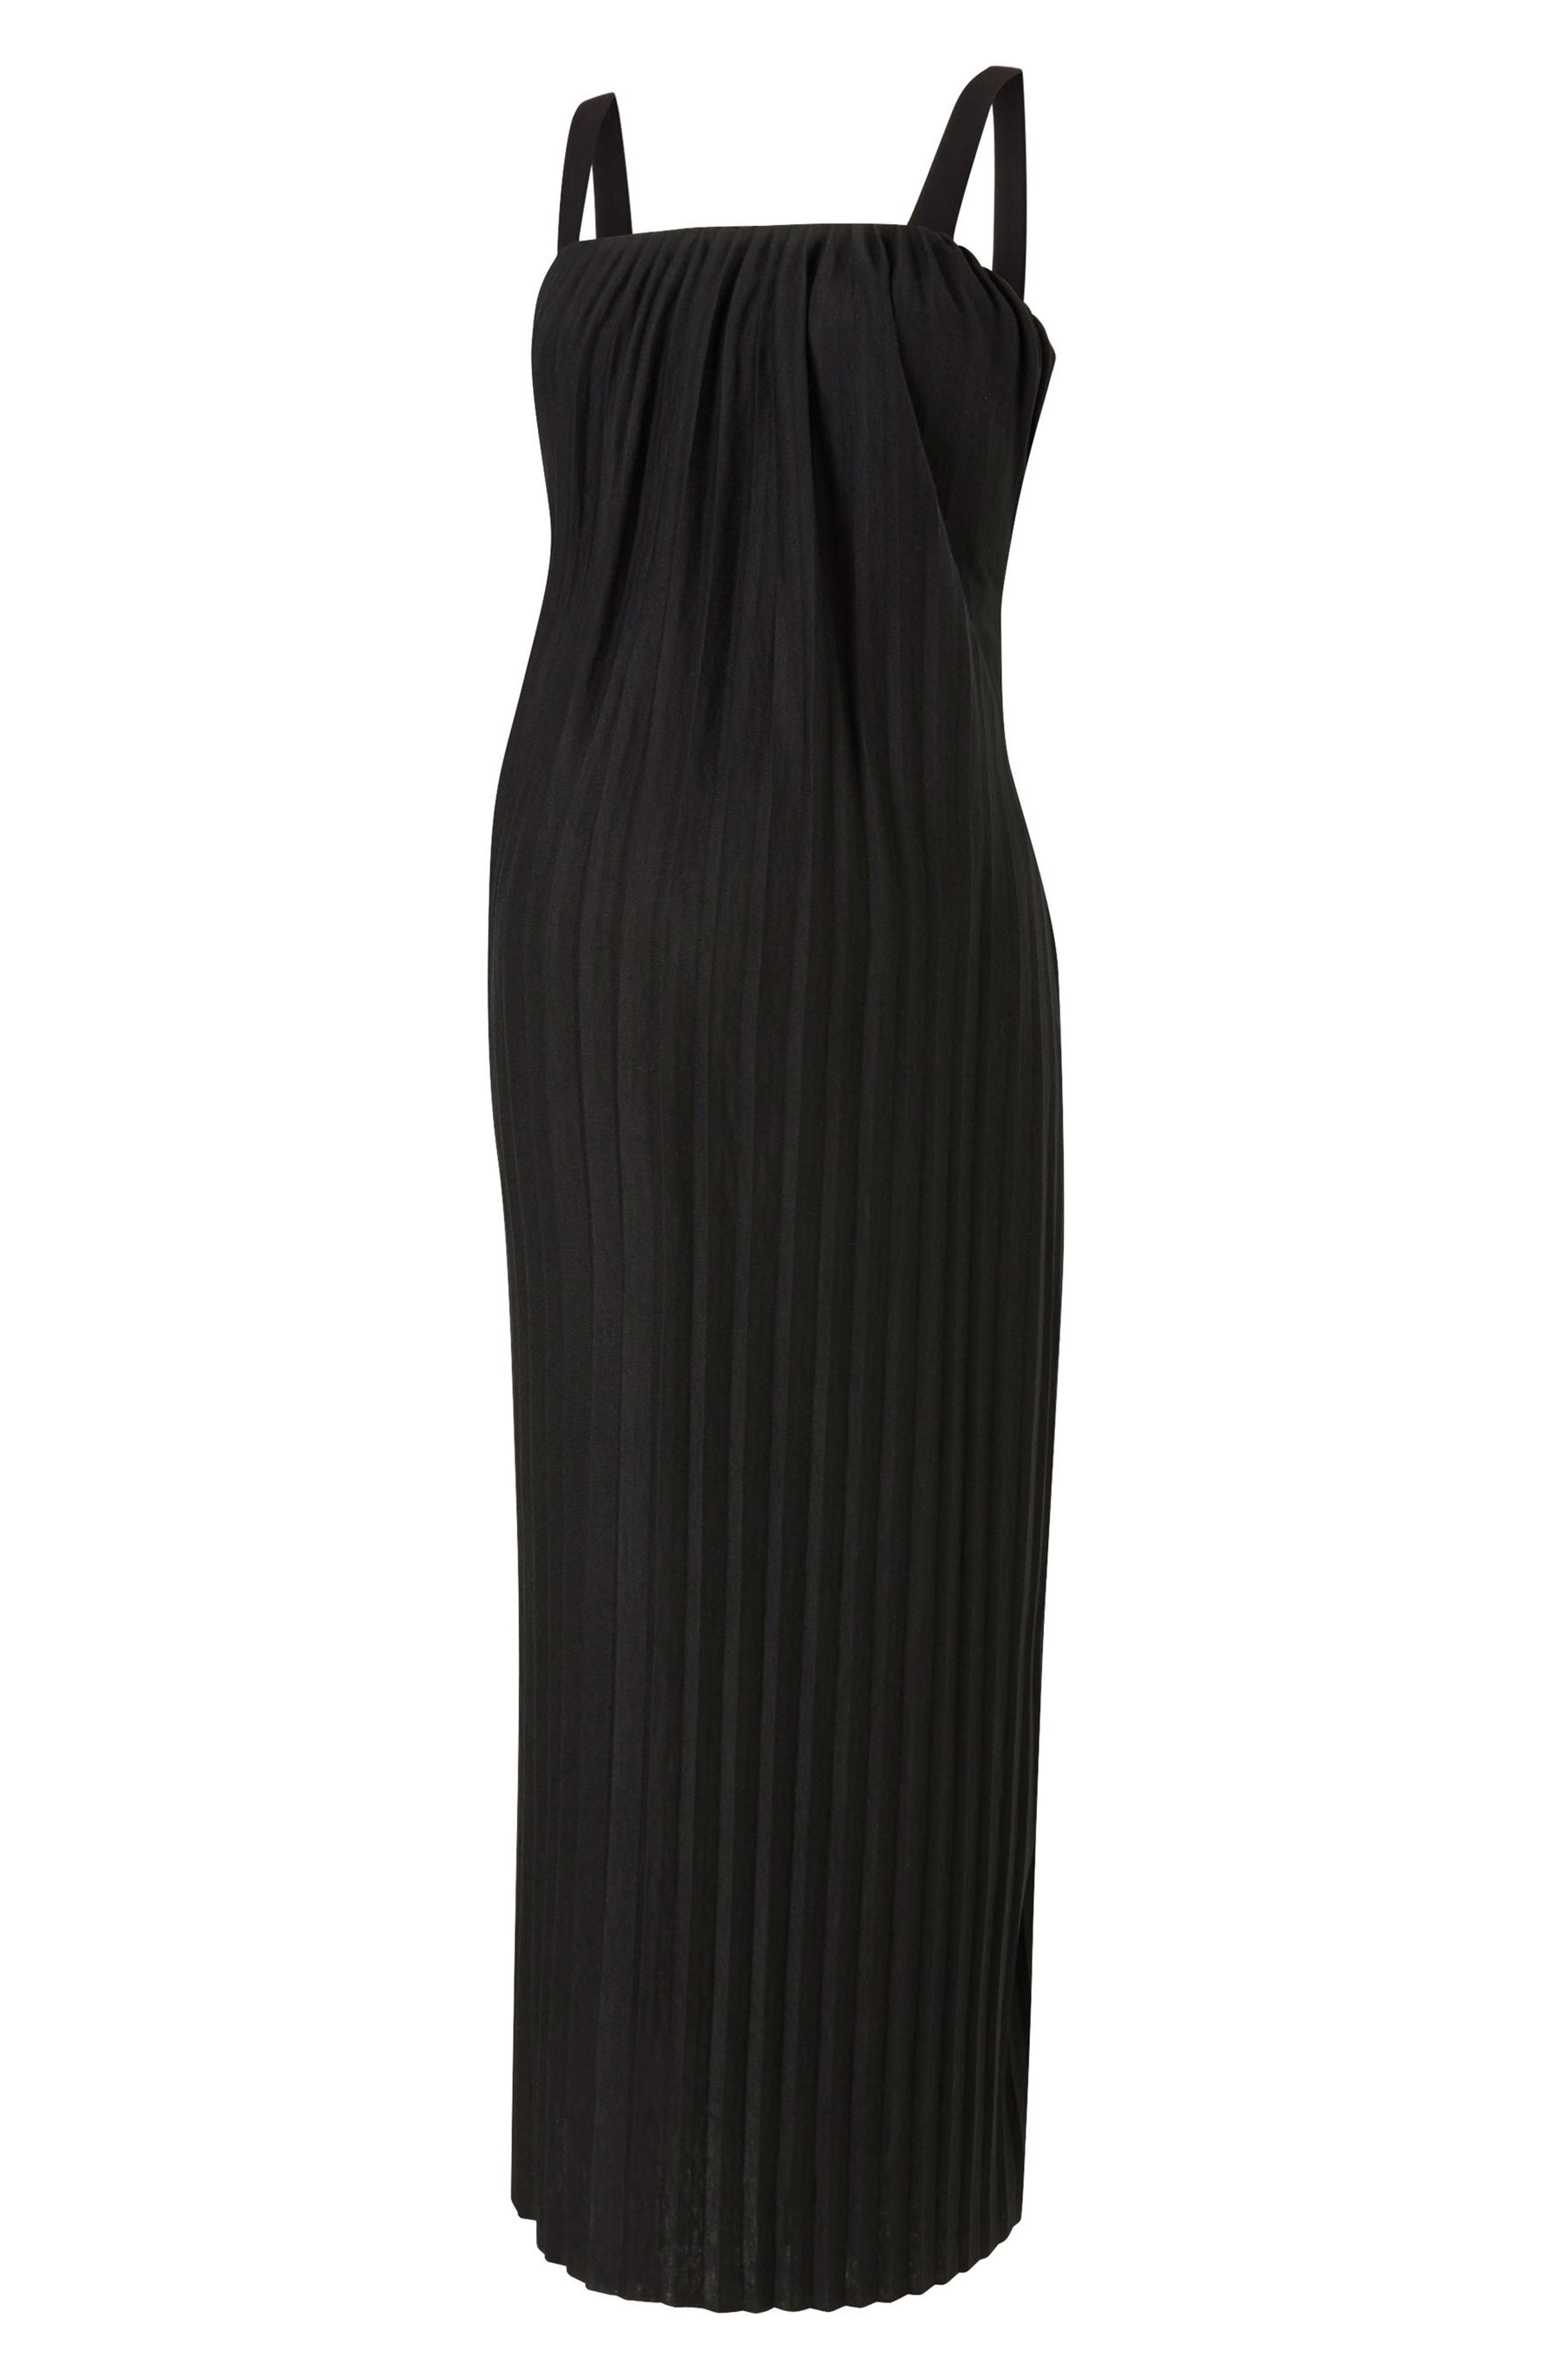 Justine Pleated Maternity Dress,                         Main,                         color, Caviar Black